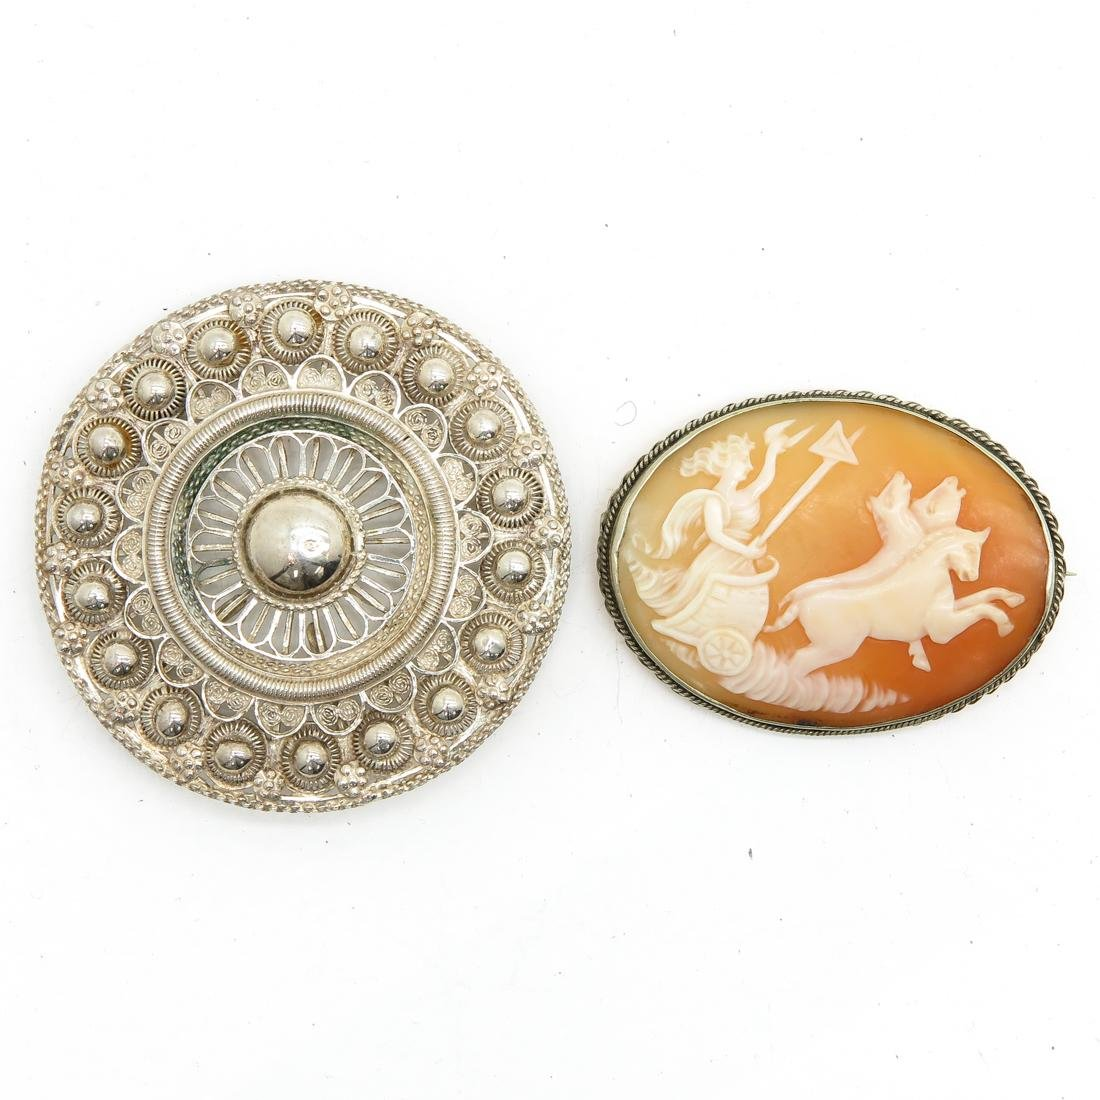 Oval Cameo Brooch and Large Silver Zeeuwse Brooch